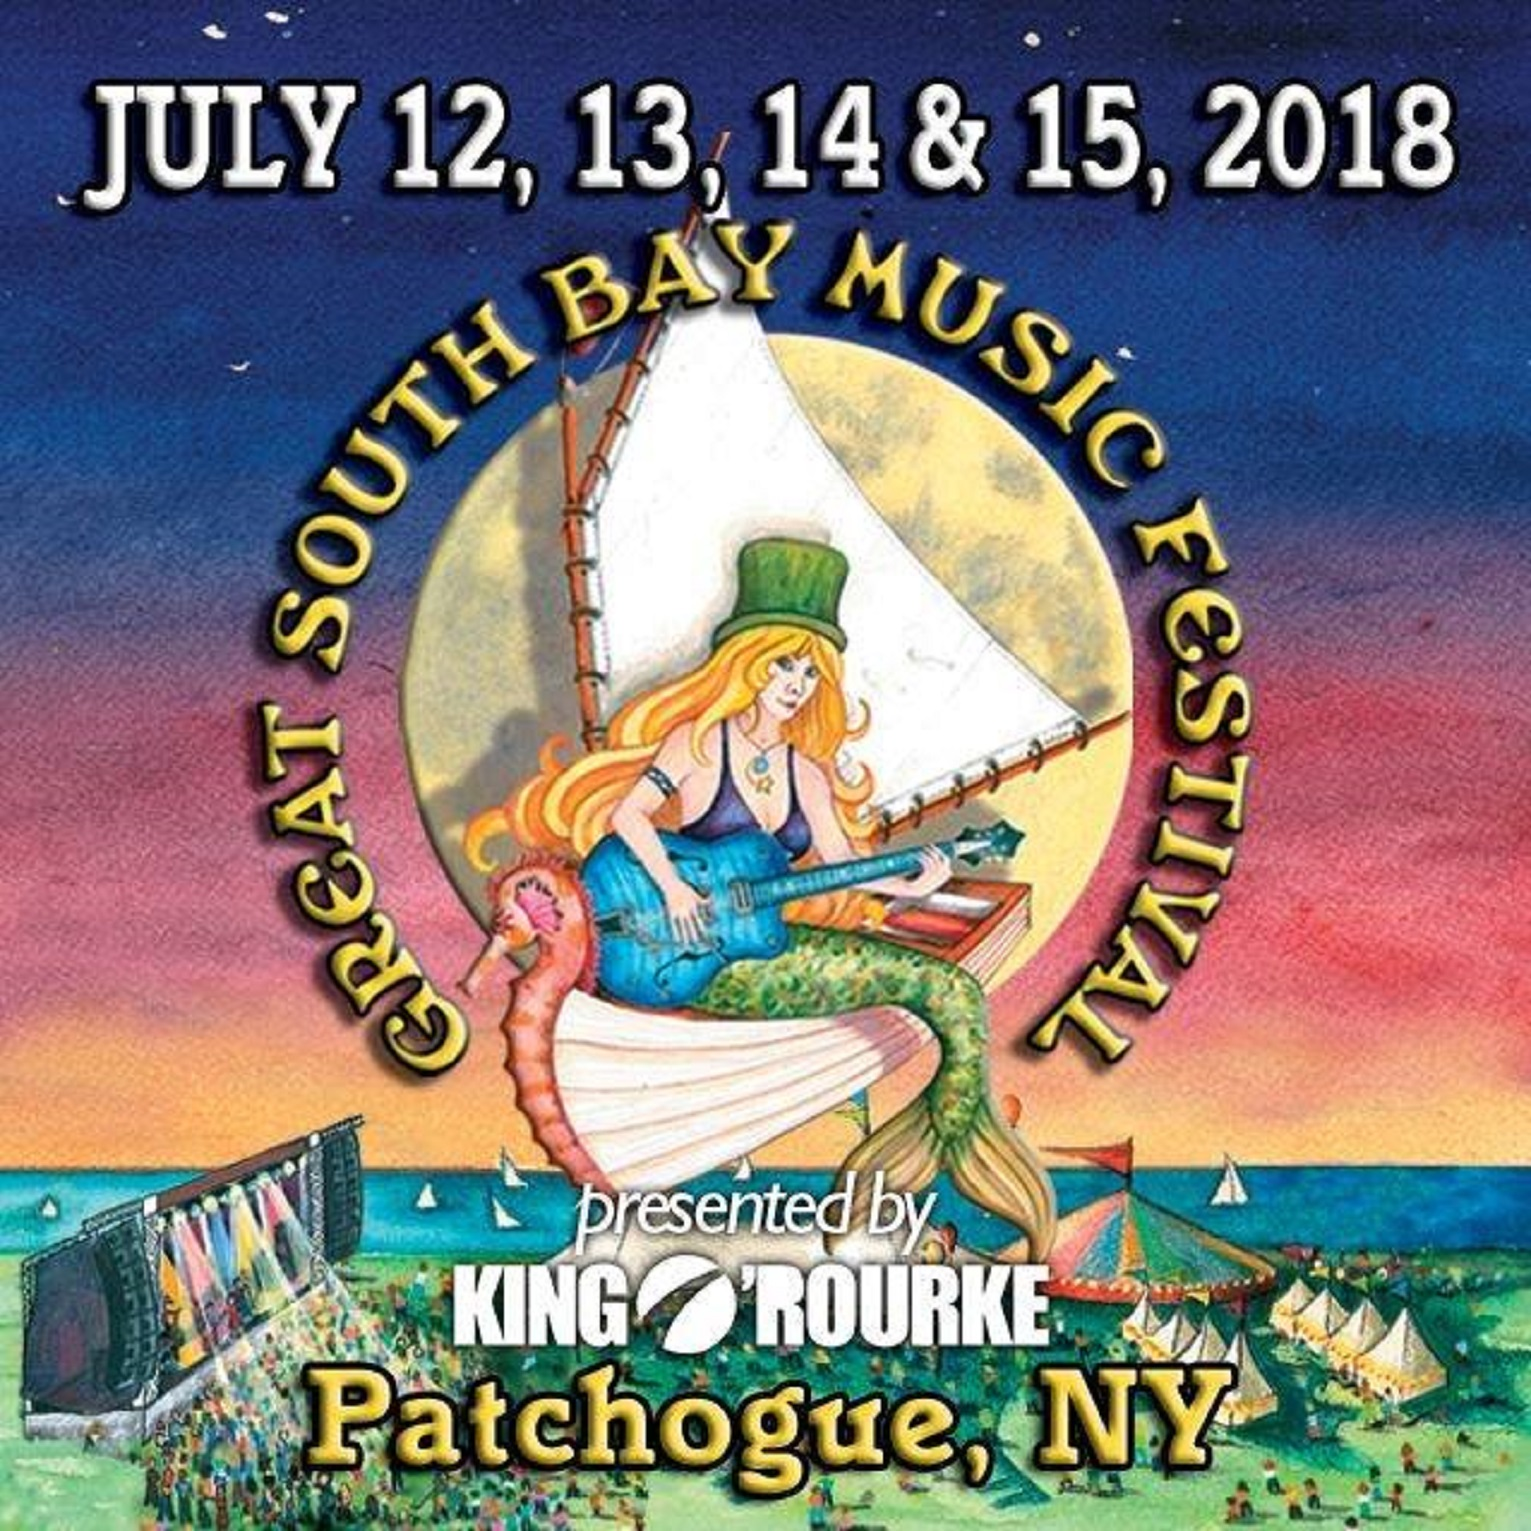 Great South Bay Music Festival Celebrating It's 12th Anniversary